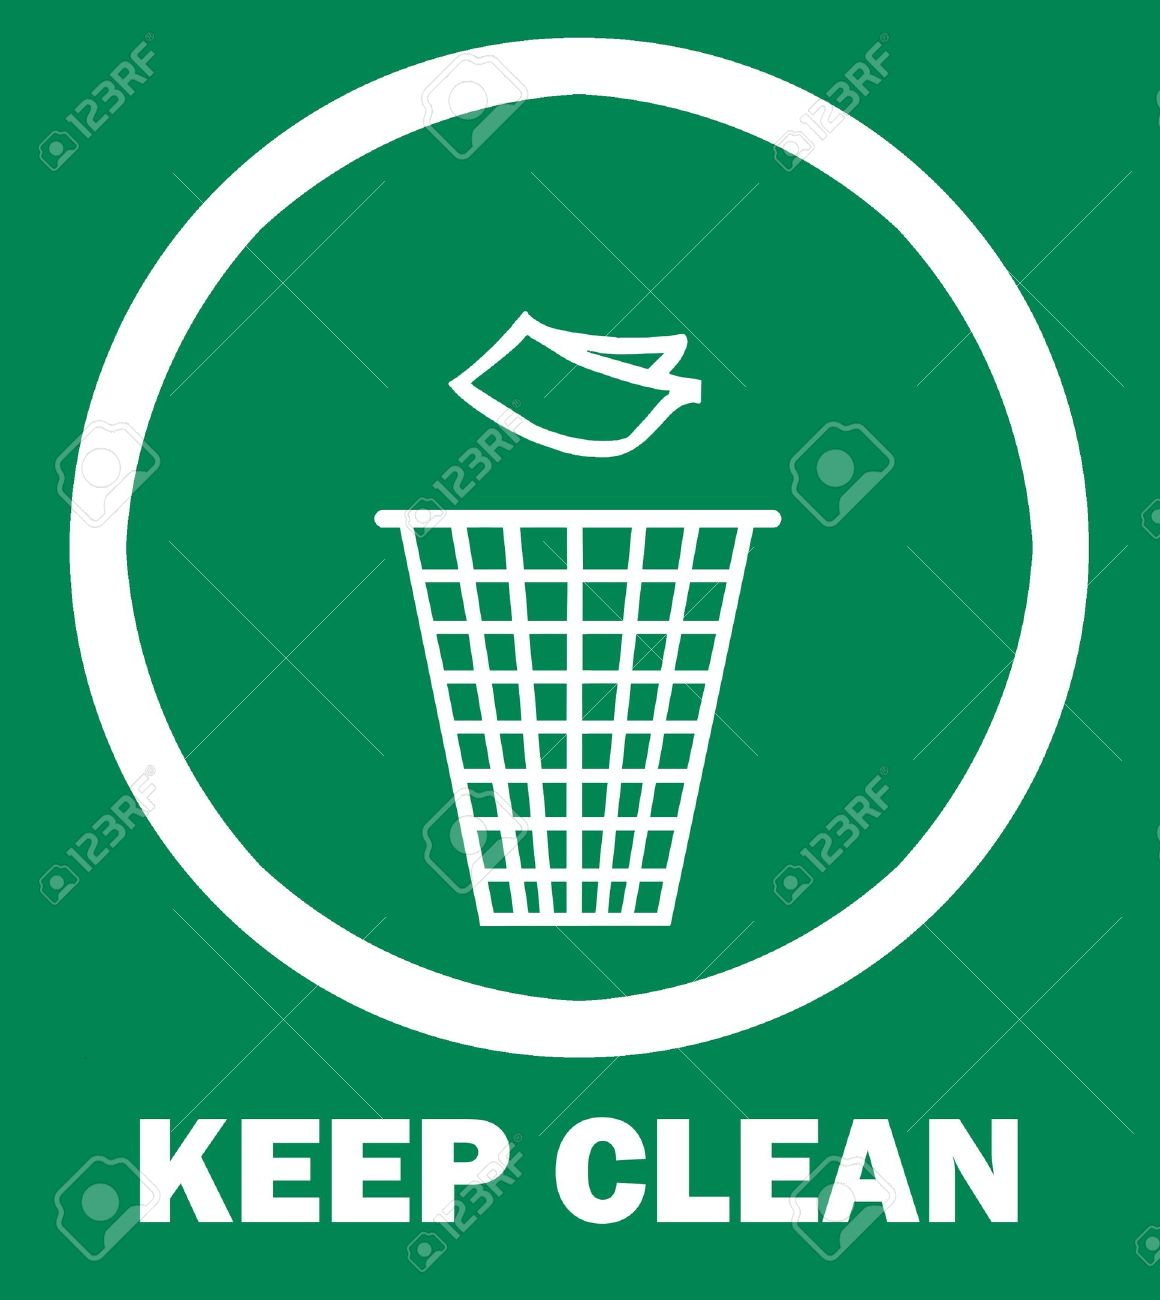 Sign of Keep Clean and Litter bin, symbol Stock Photo - 9063379